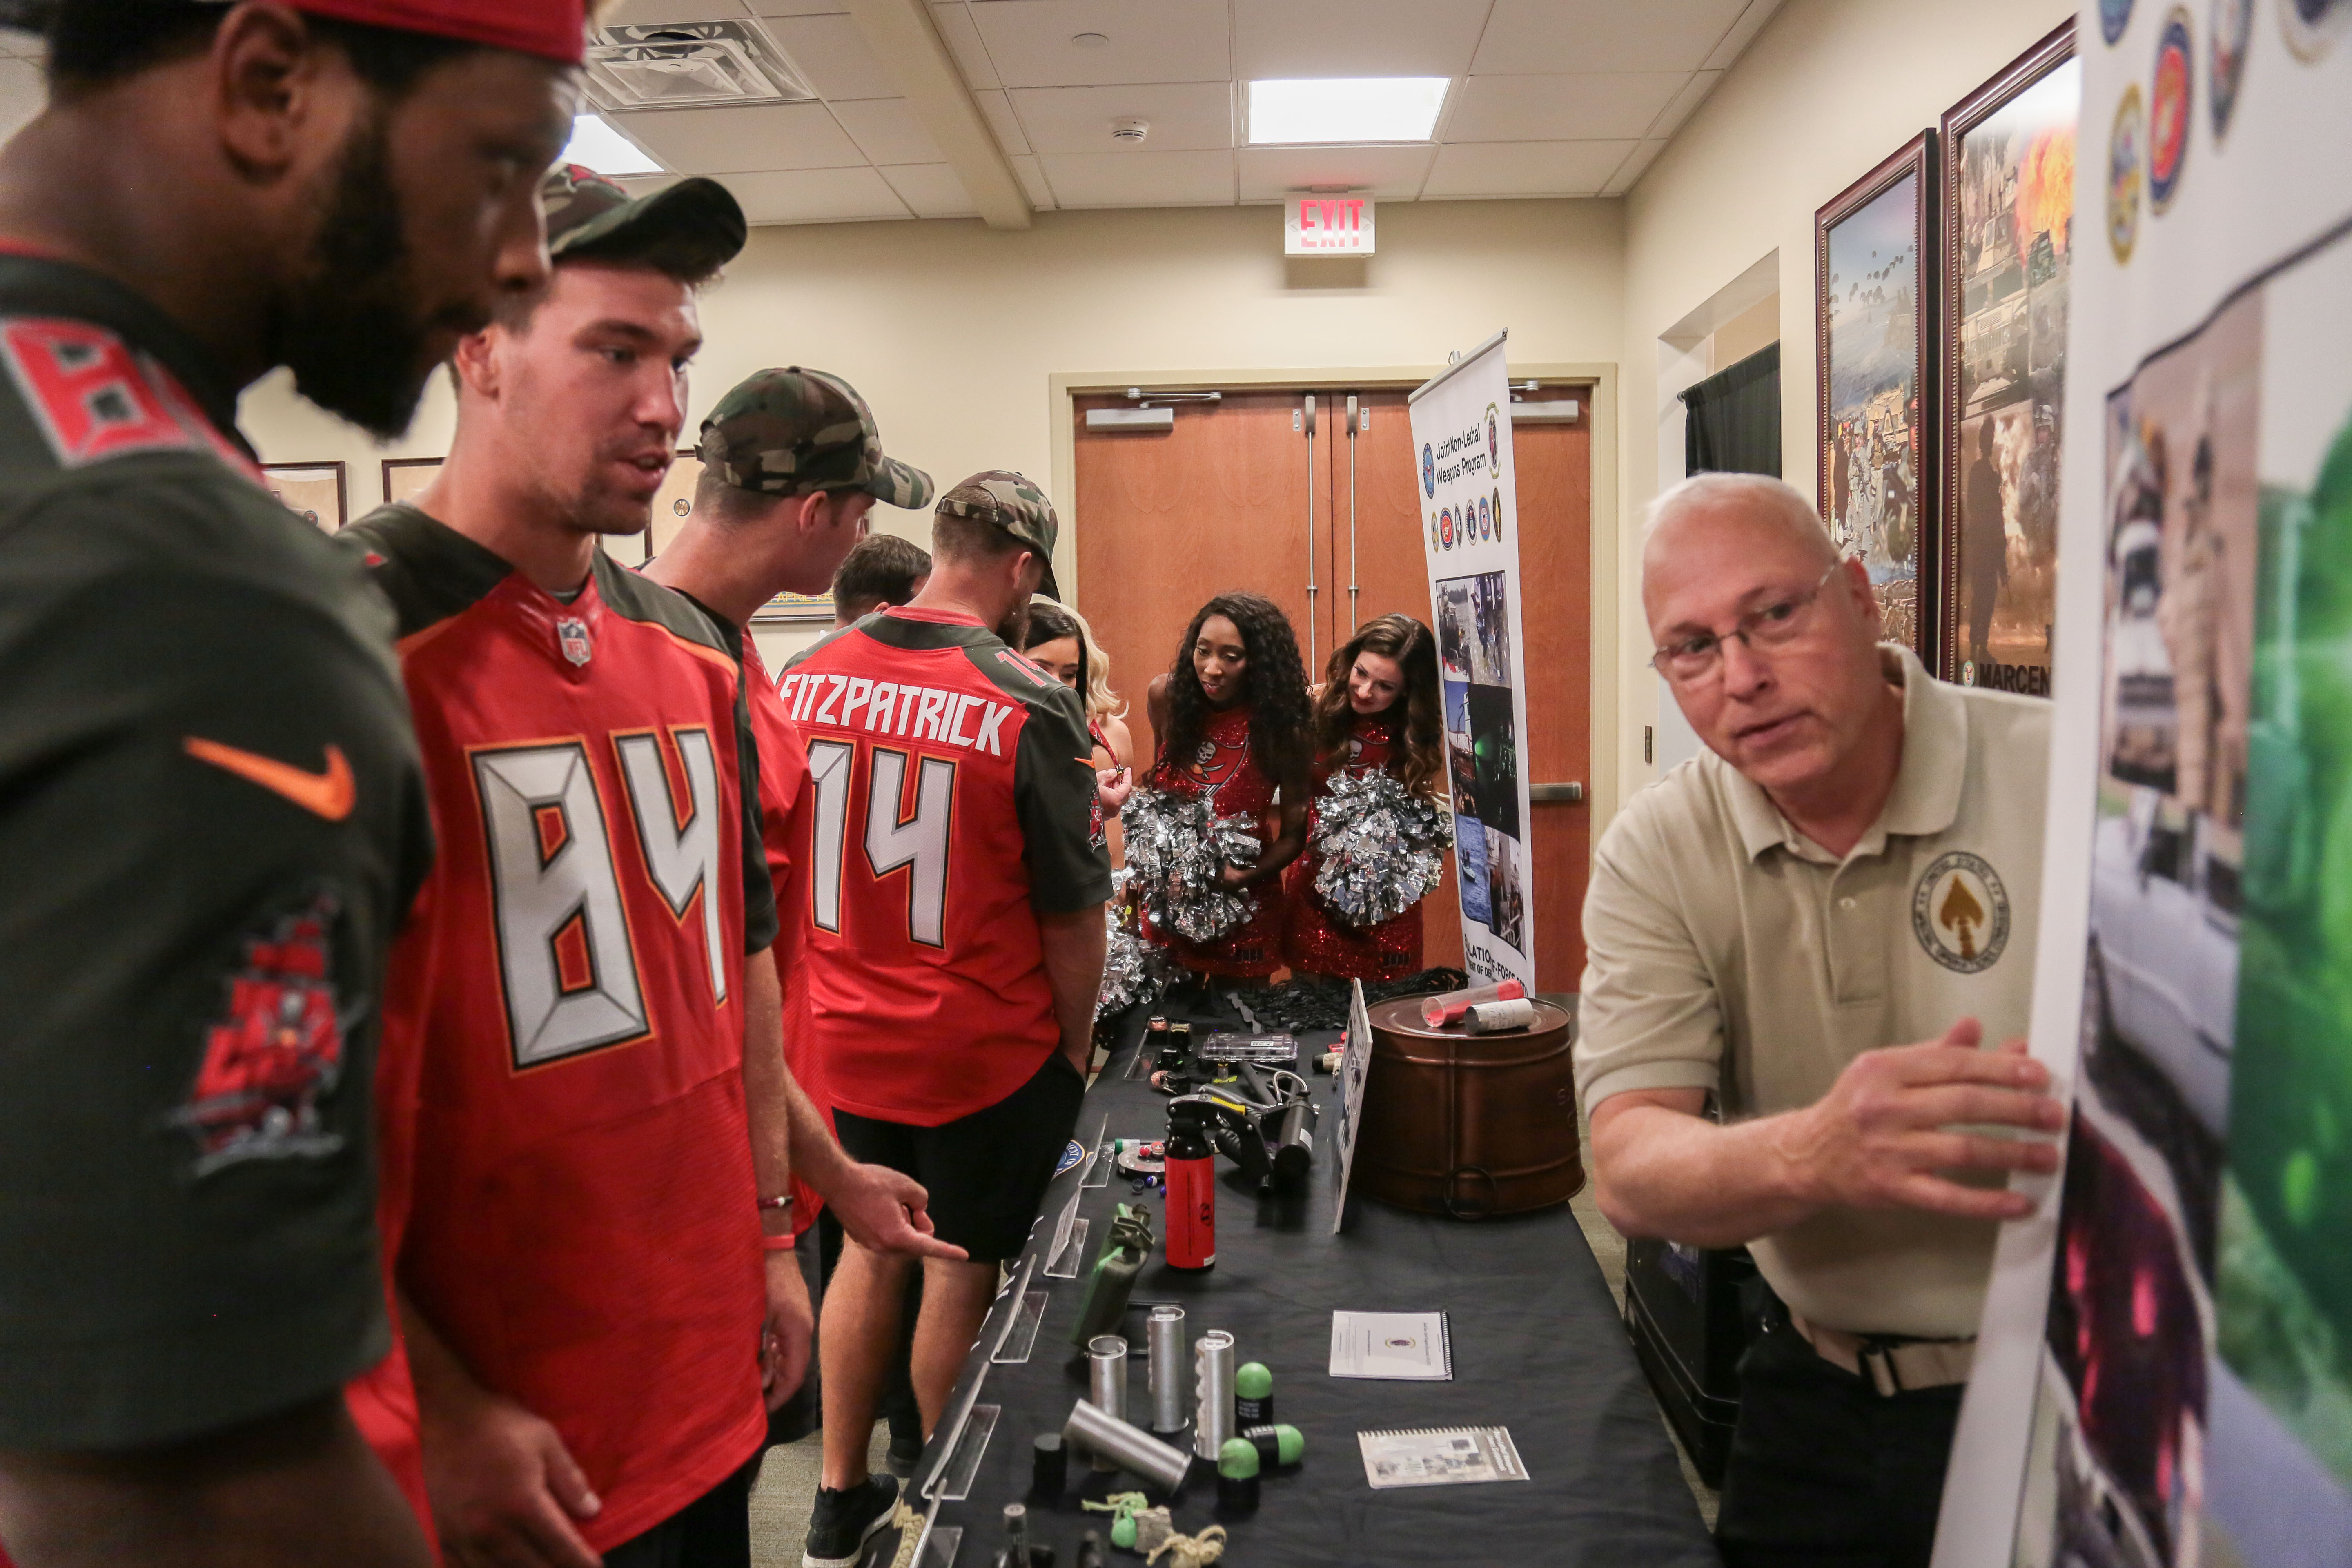 Non-Lethal Weapons Demonstrated to Tampa Bay Buccaneers